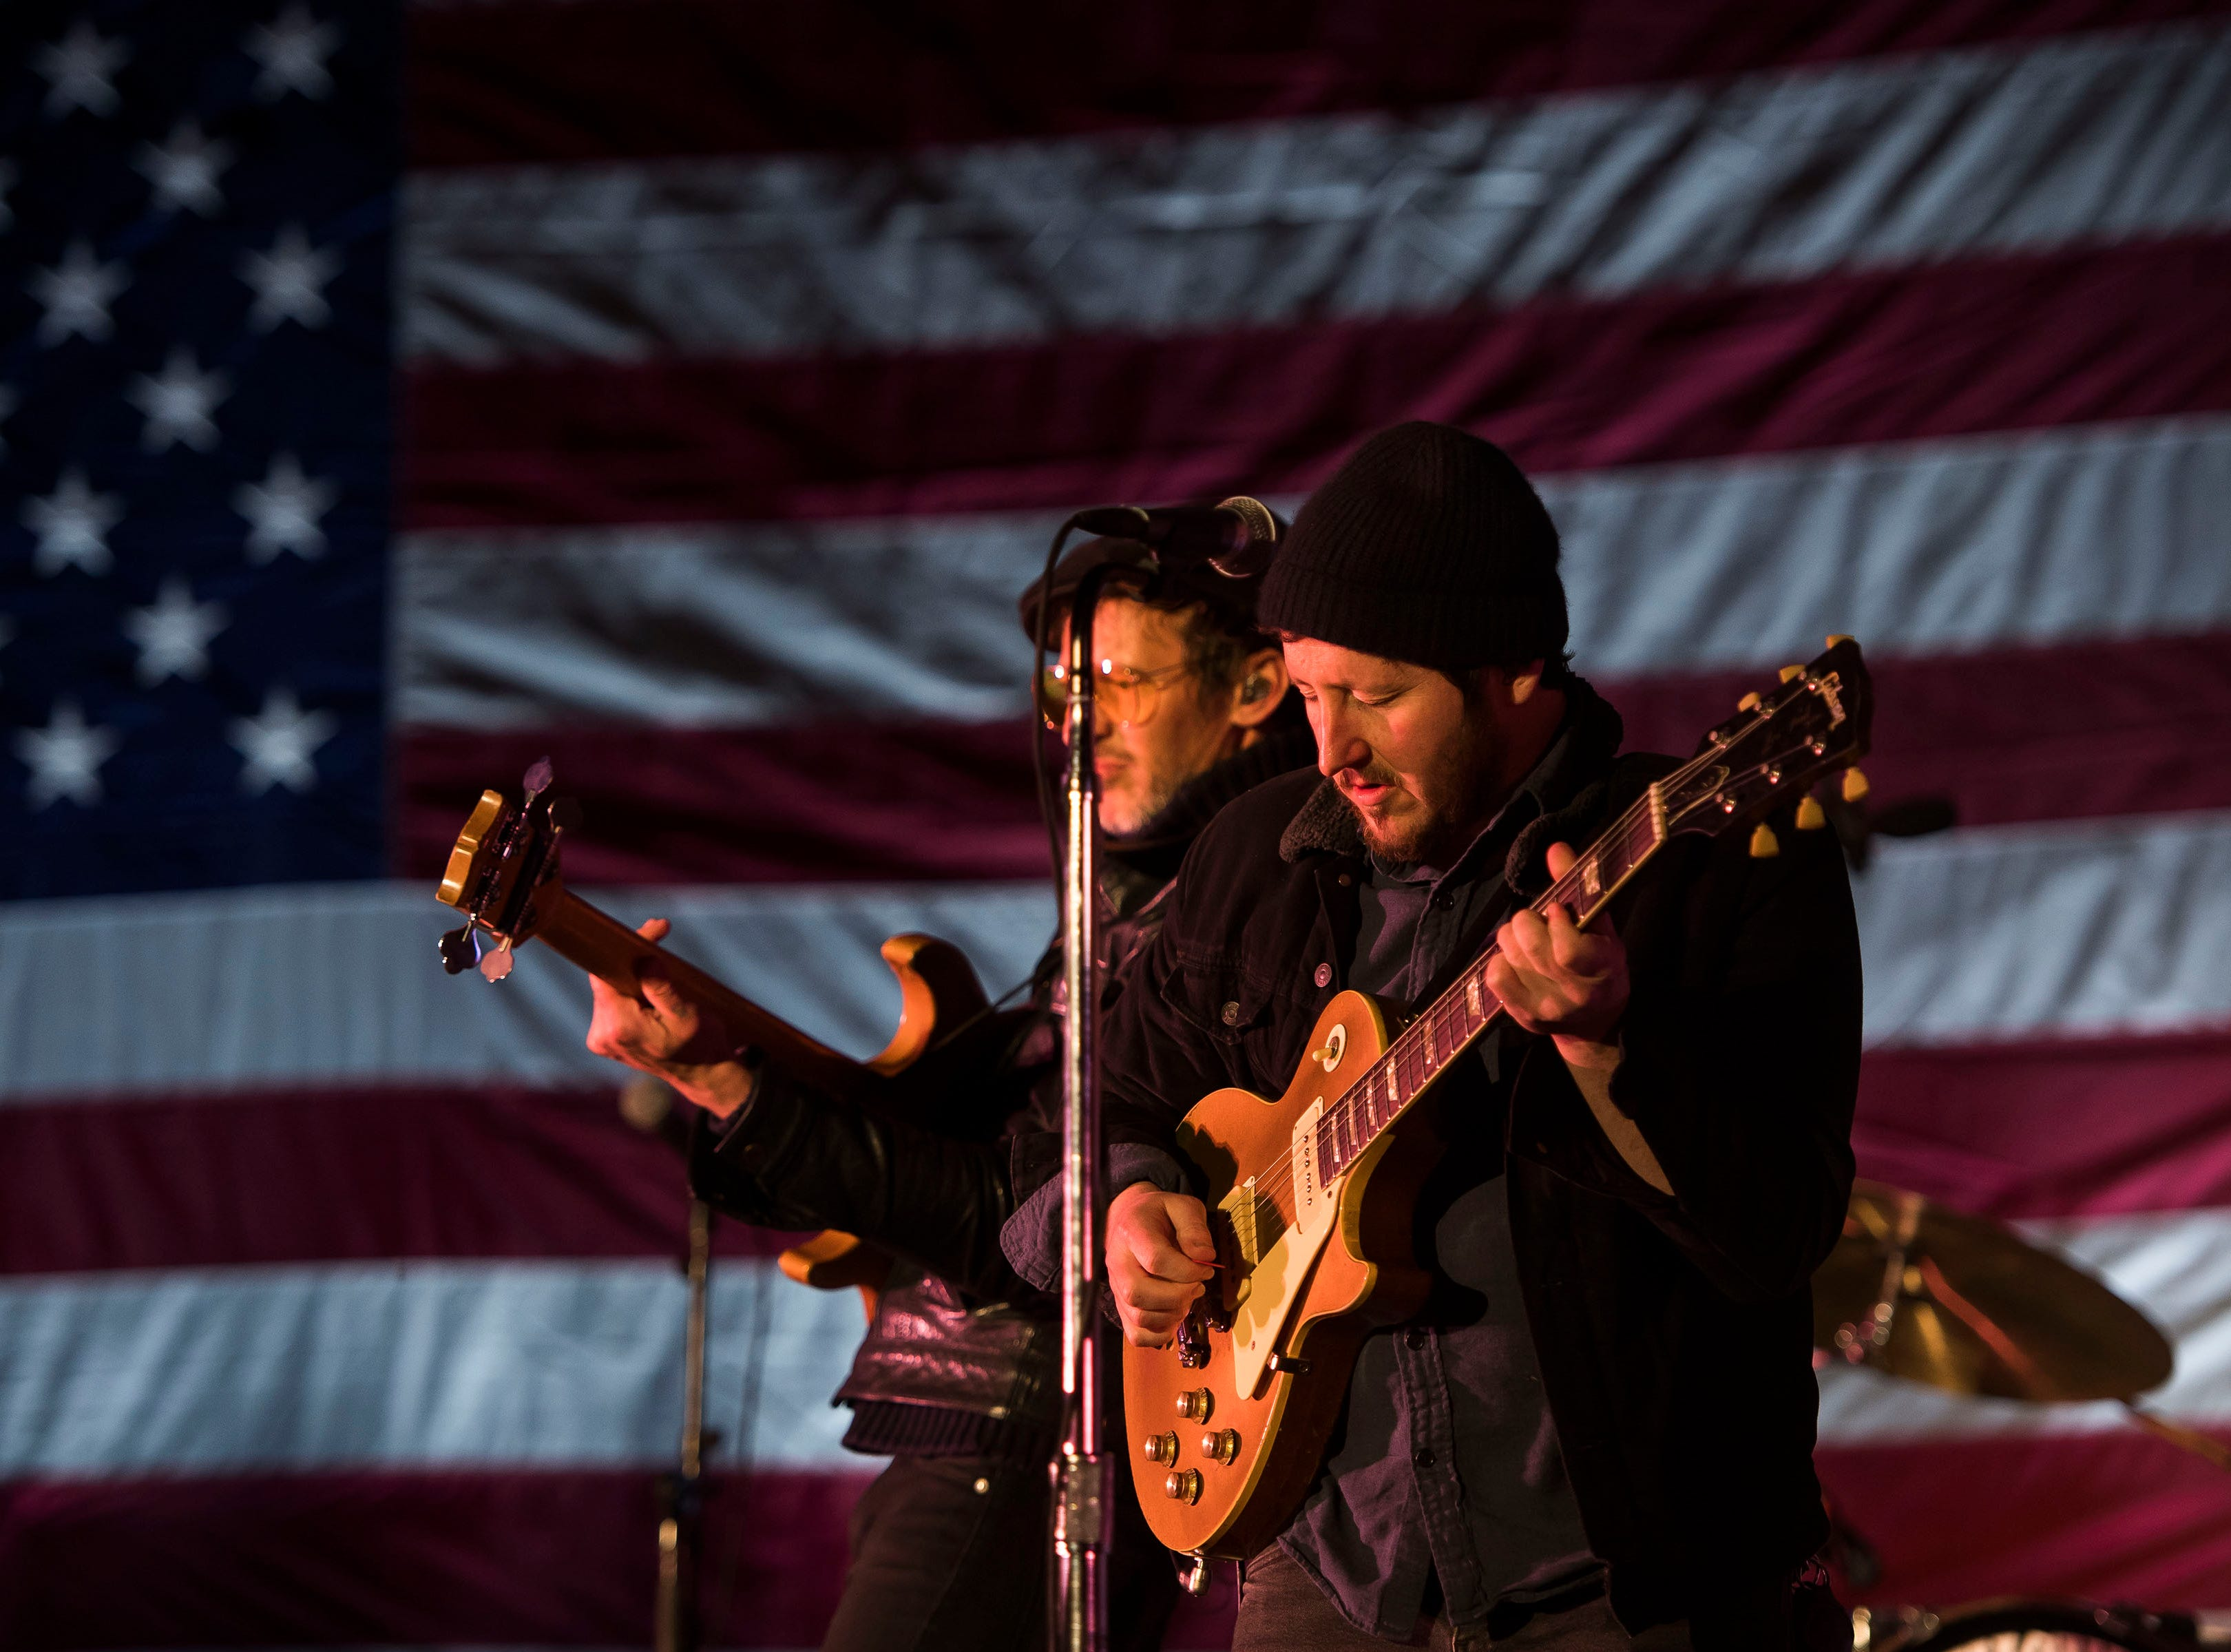 Nathaniel Rateliff & The Night Sweats perform at the John Hickenlooper presidential campaign kick-off rally on Thursday, March 7, 2019, at the Greek Ampitheatre in Civic Center Park in Denver, Colo.